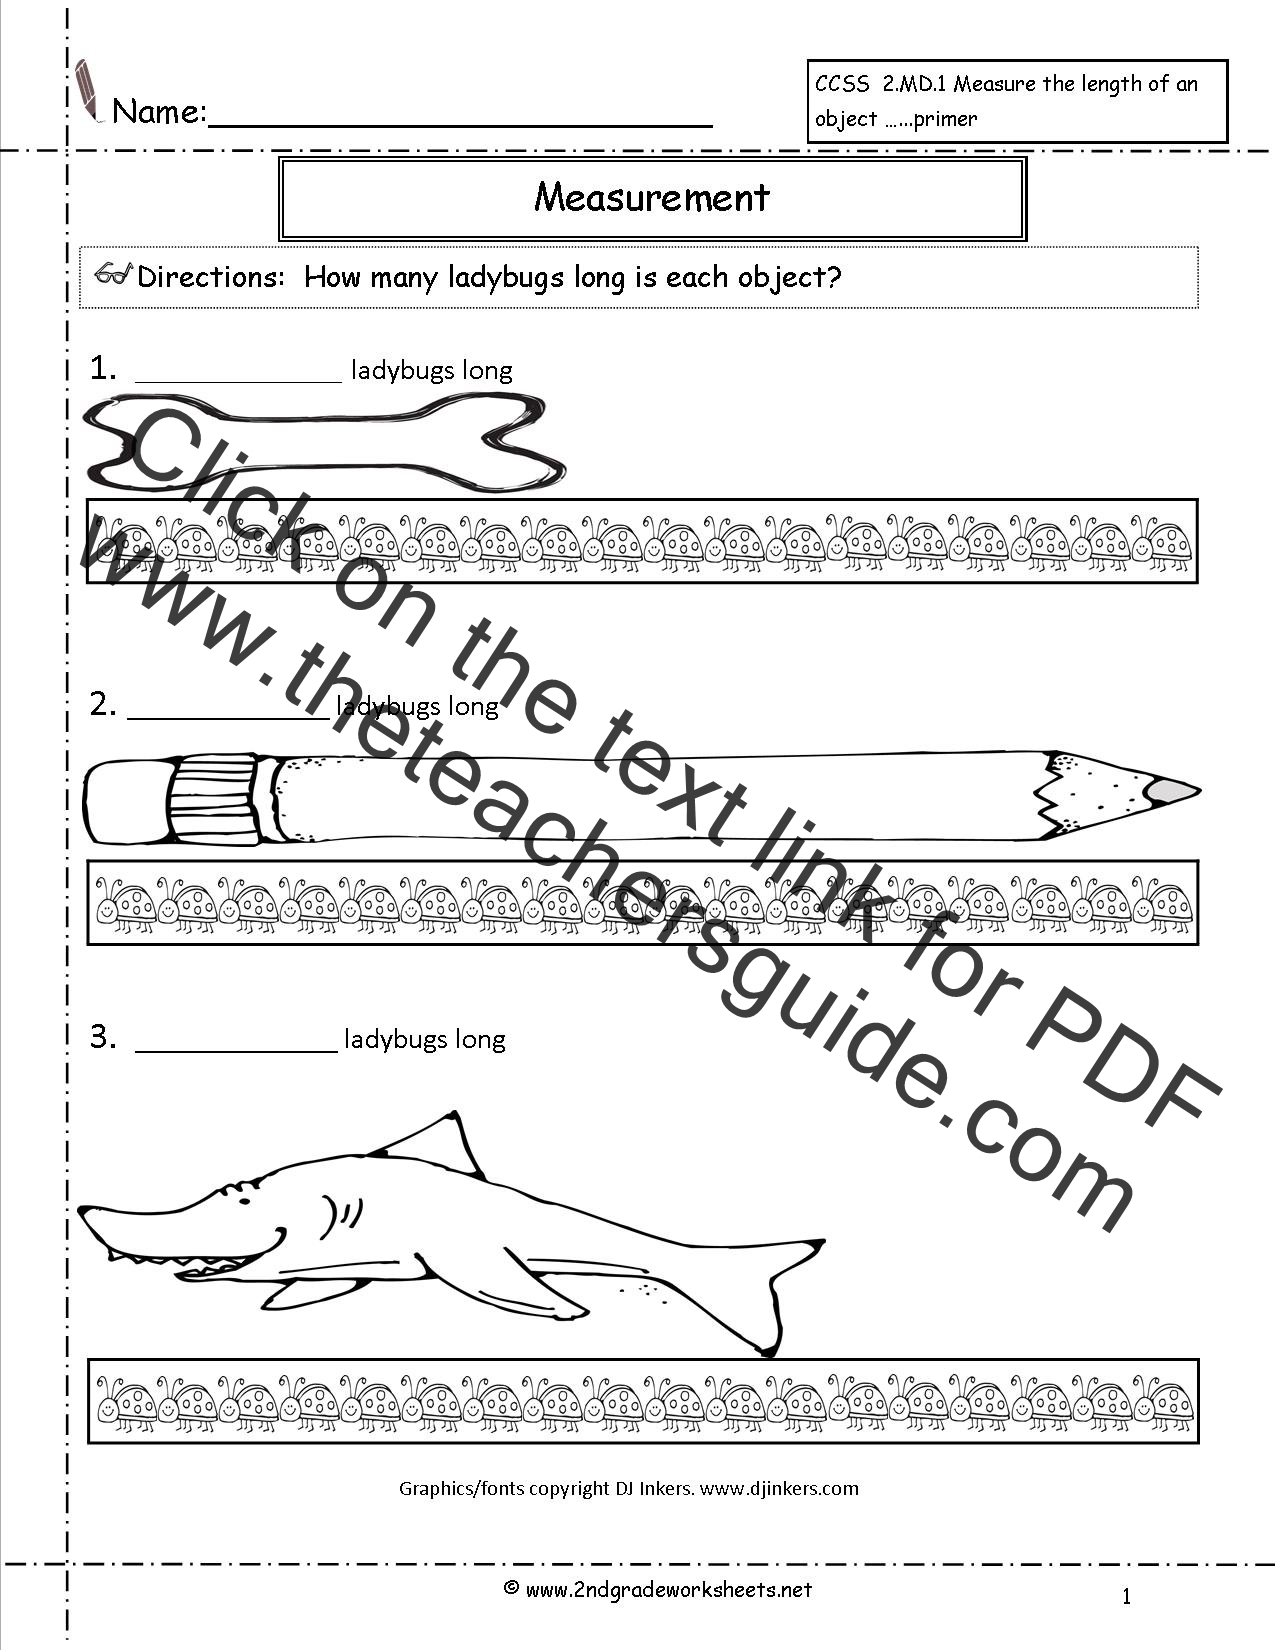 Measurement Worksheets 2nd Grade - Davezan